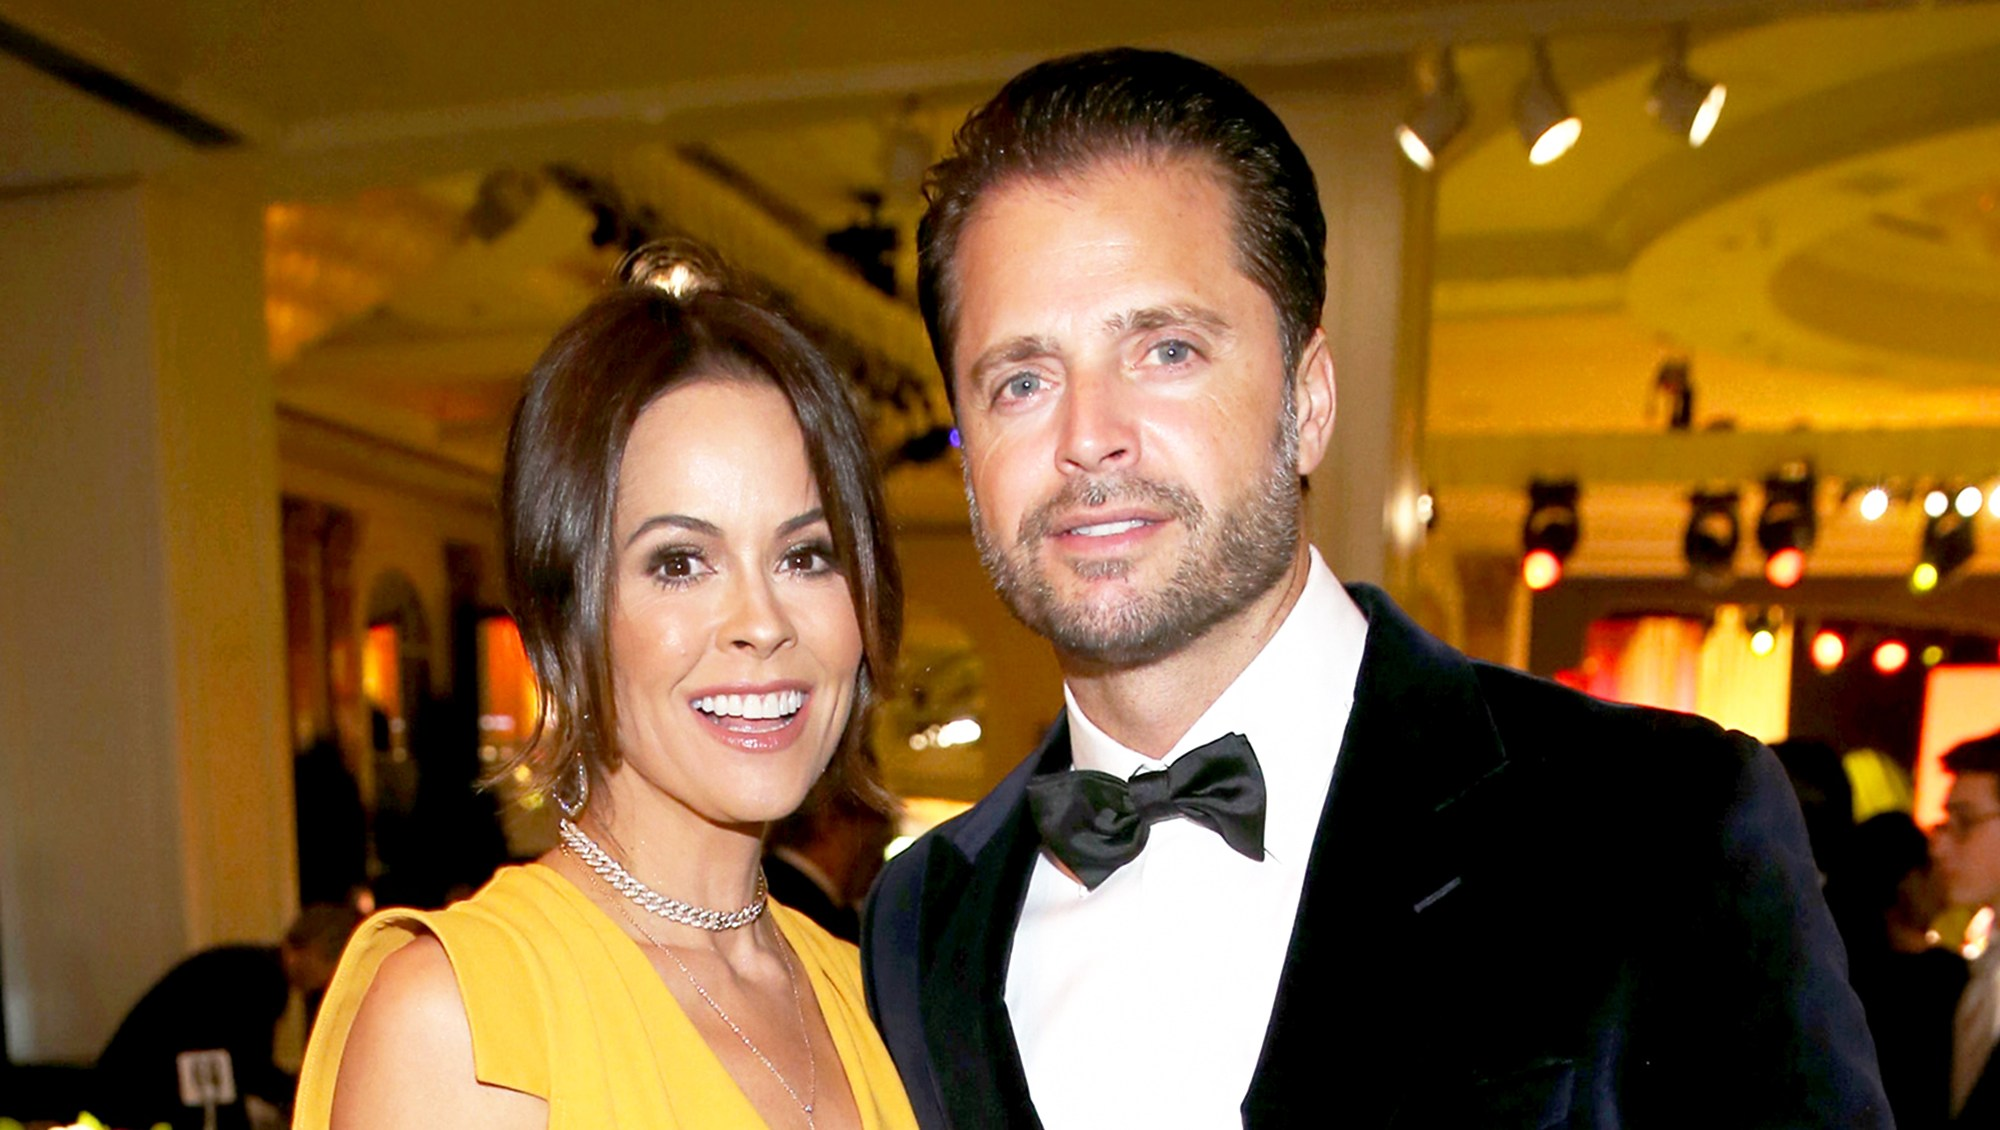 Brooke Burke-Charvet and David Charvet attend the Sixth Biennial UNICEF 2016 Ball at Regent Beverly Wilshire Hotel in Beverly Hills, California.